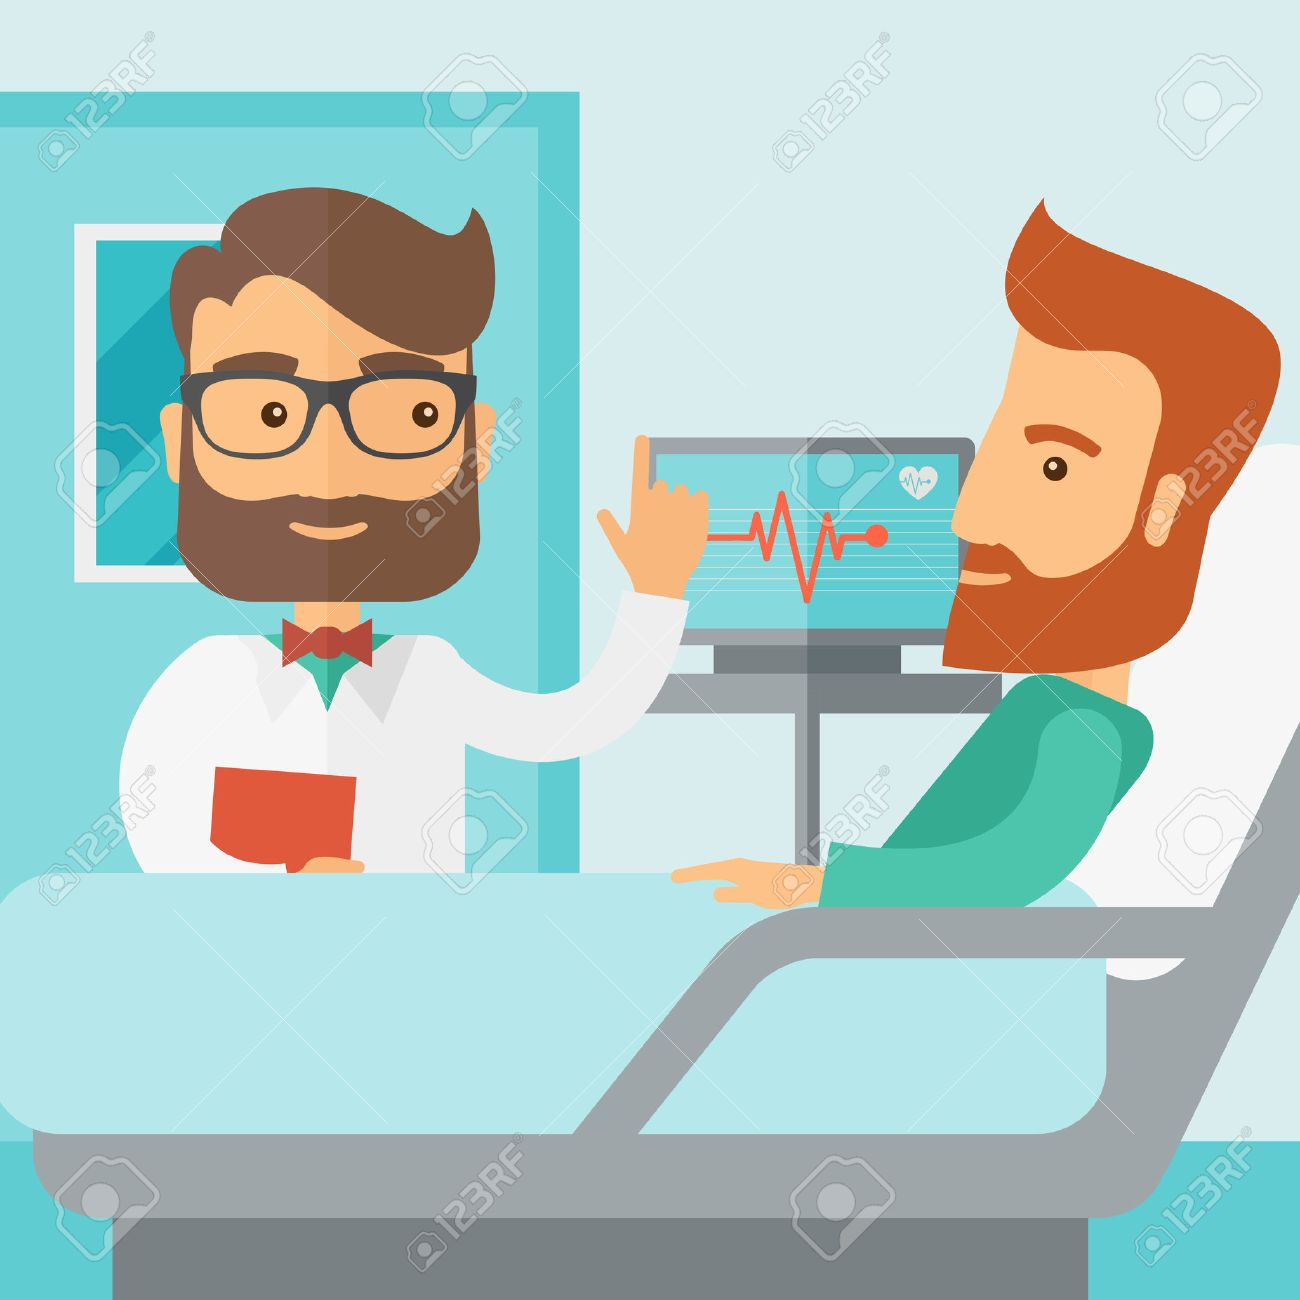 A medical caucasian patient being treated by an expert doctor in a hospital room. Contemporary style with pastel palette, soft blue tinted background. Vector flat design illustrations. Square layout. Banque d'images - 42646403